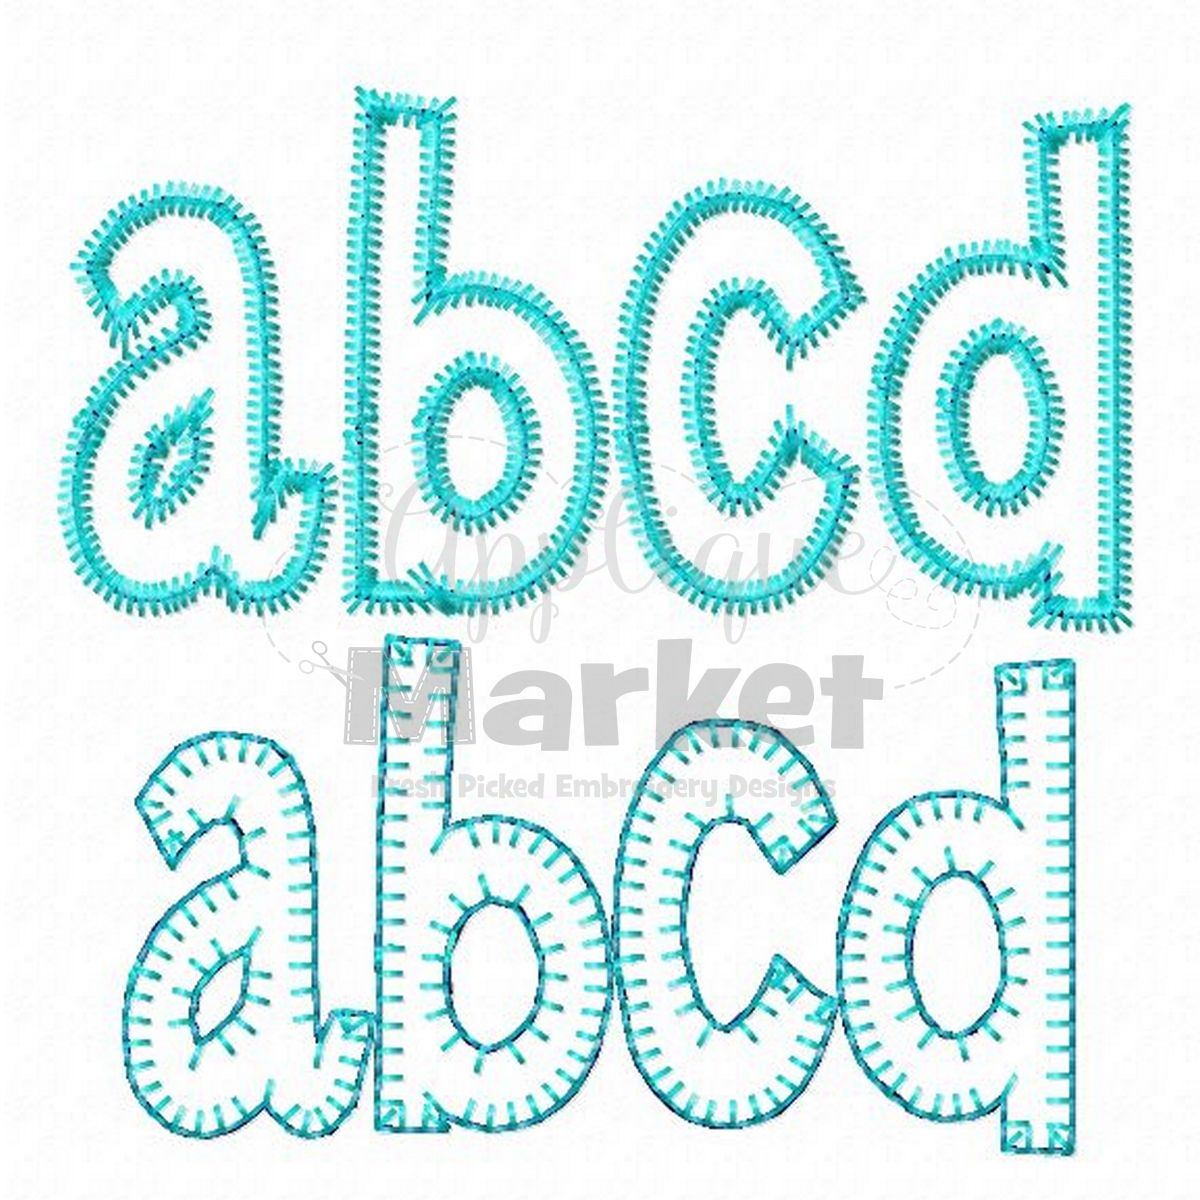 Henry applique alphabet blanket stitch sample embroidery